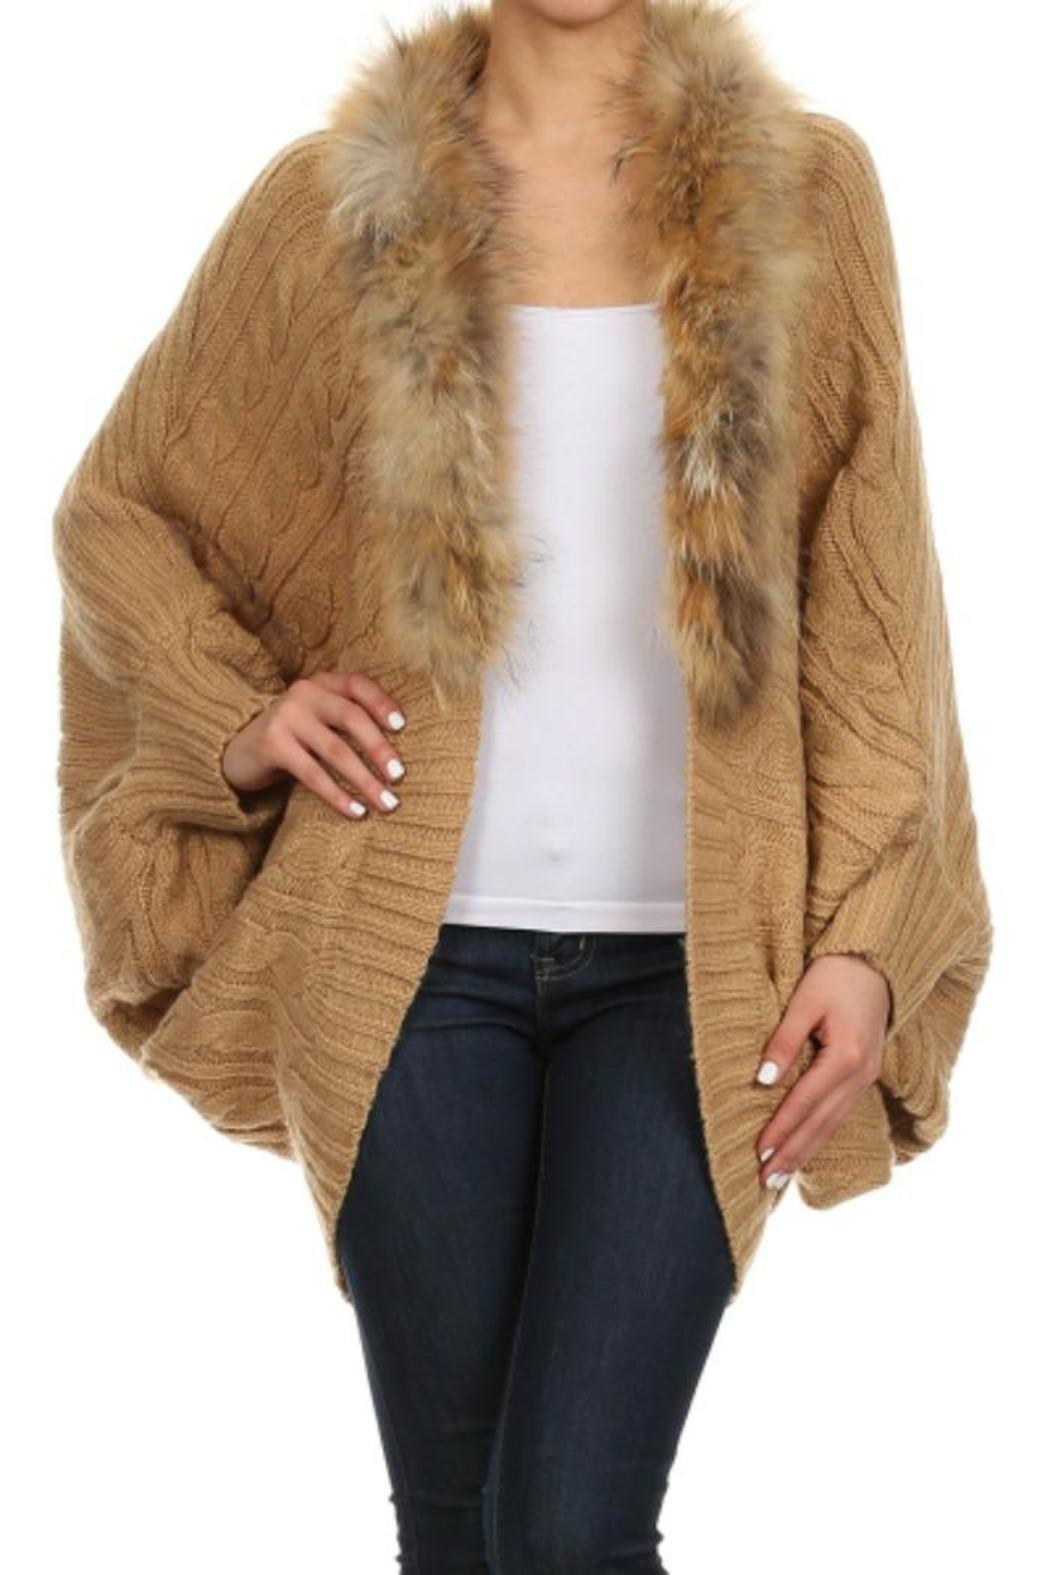 Freeway Apparel Faux Fur Trim Cardigan from North Carolina by ...